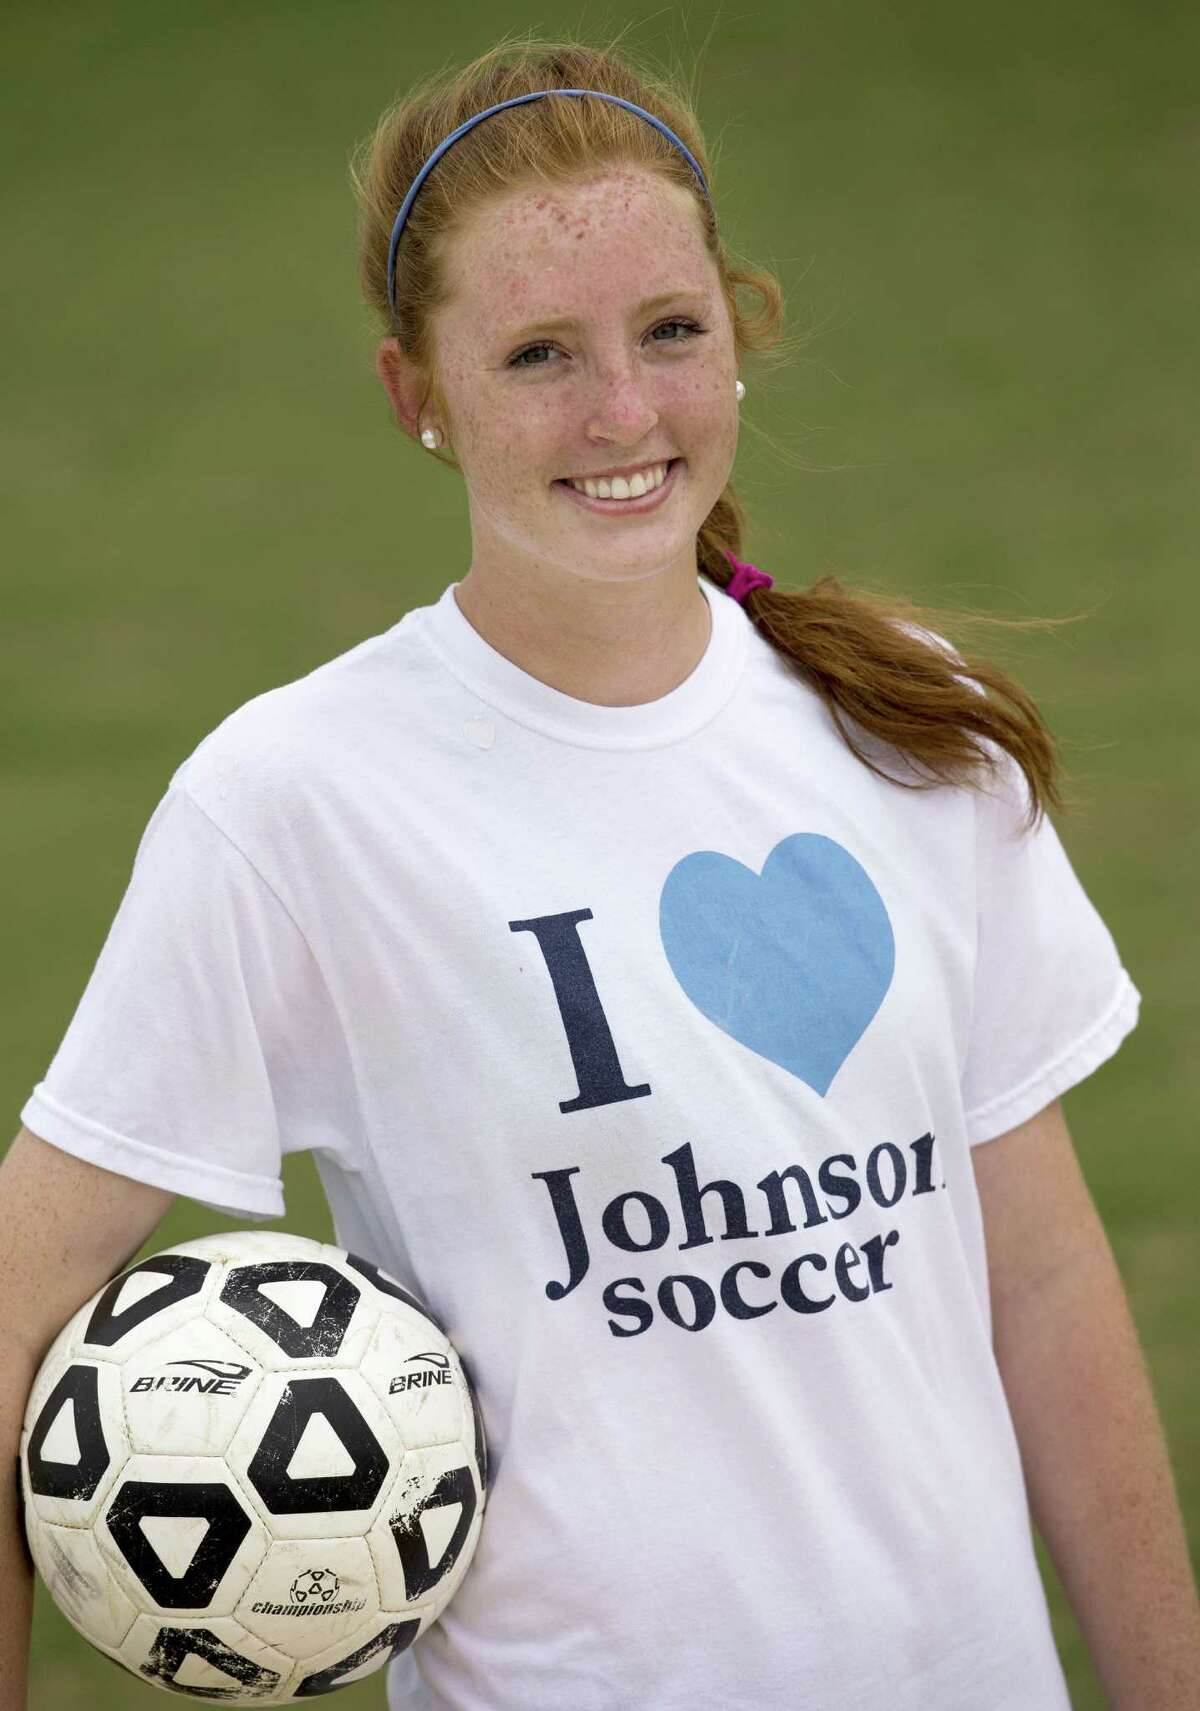 Johnson's Amber Stearns (pictured) and sister Morgan Stearns also are U.S. youth national team players.